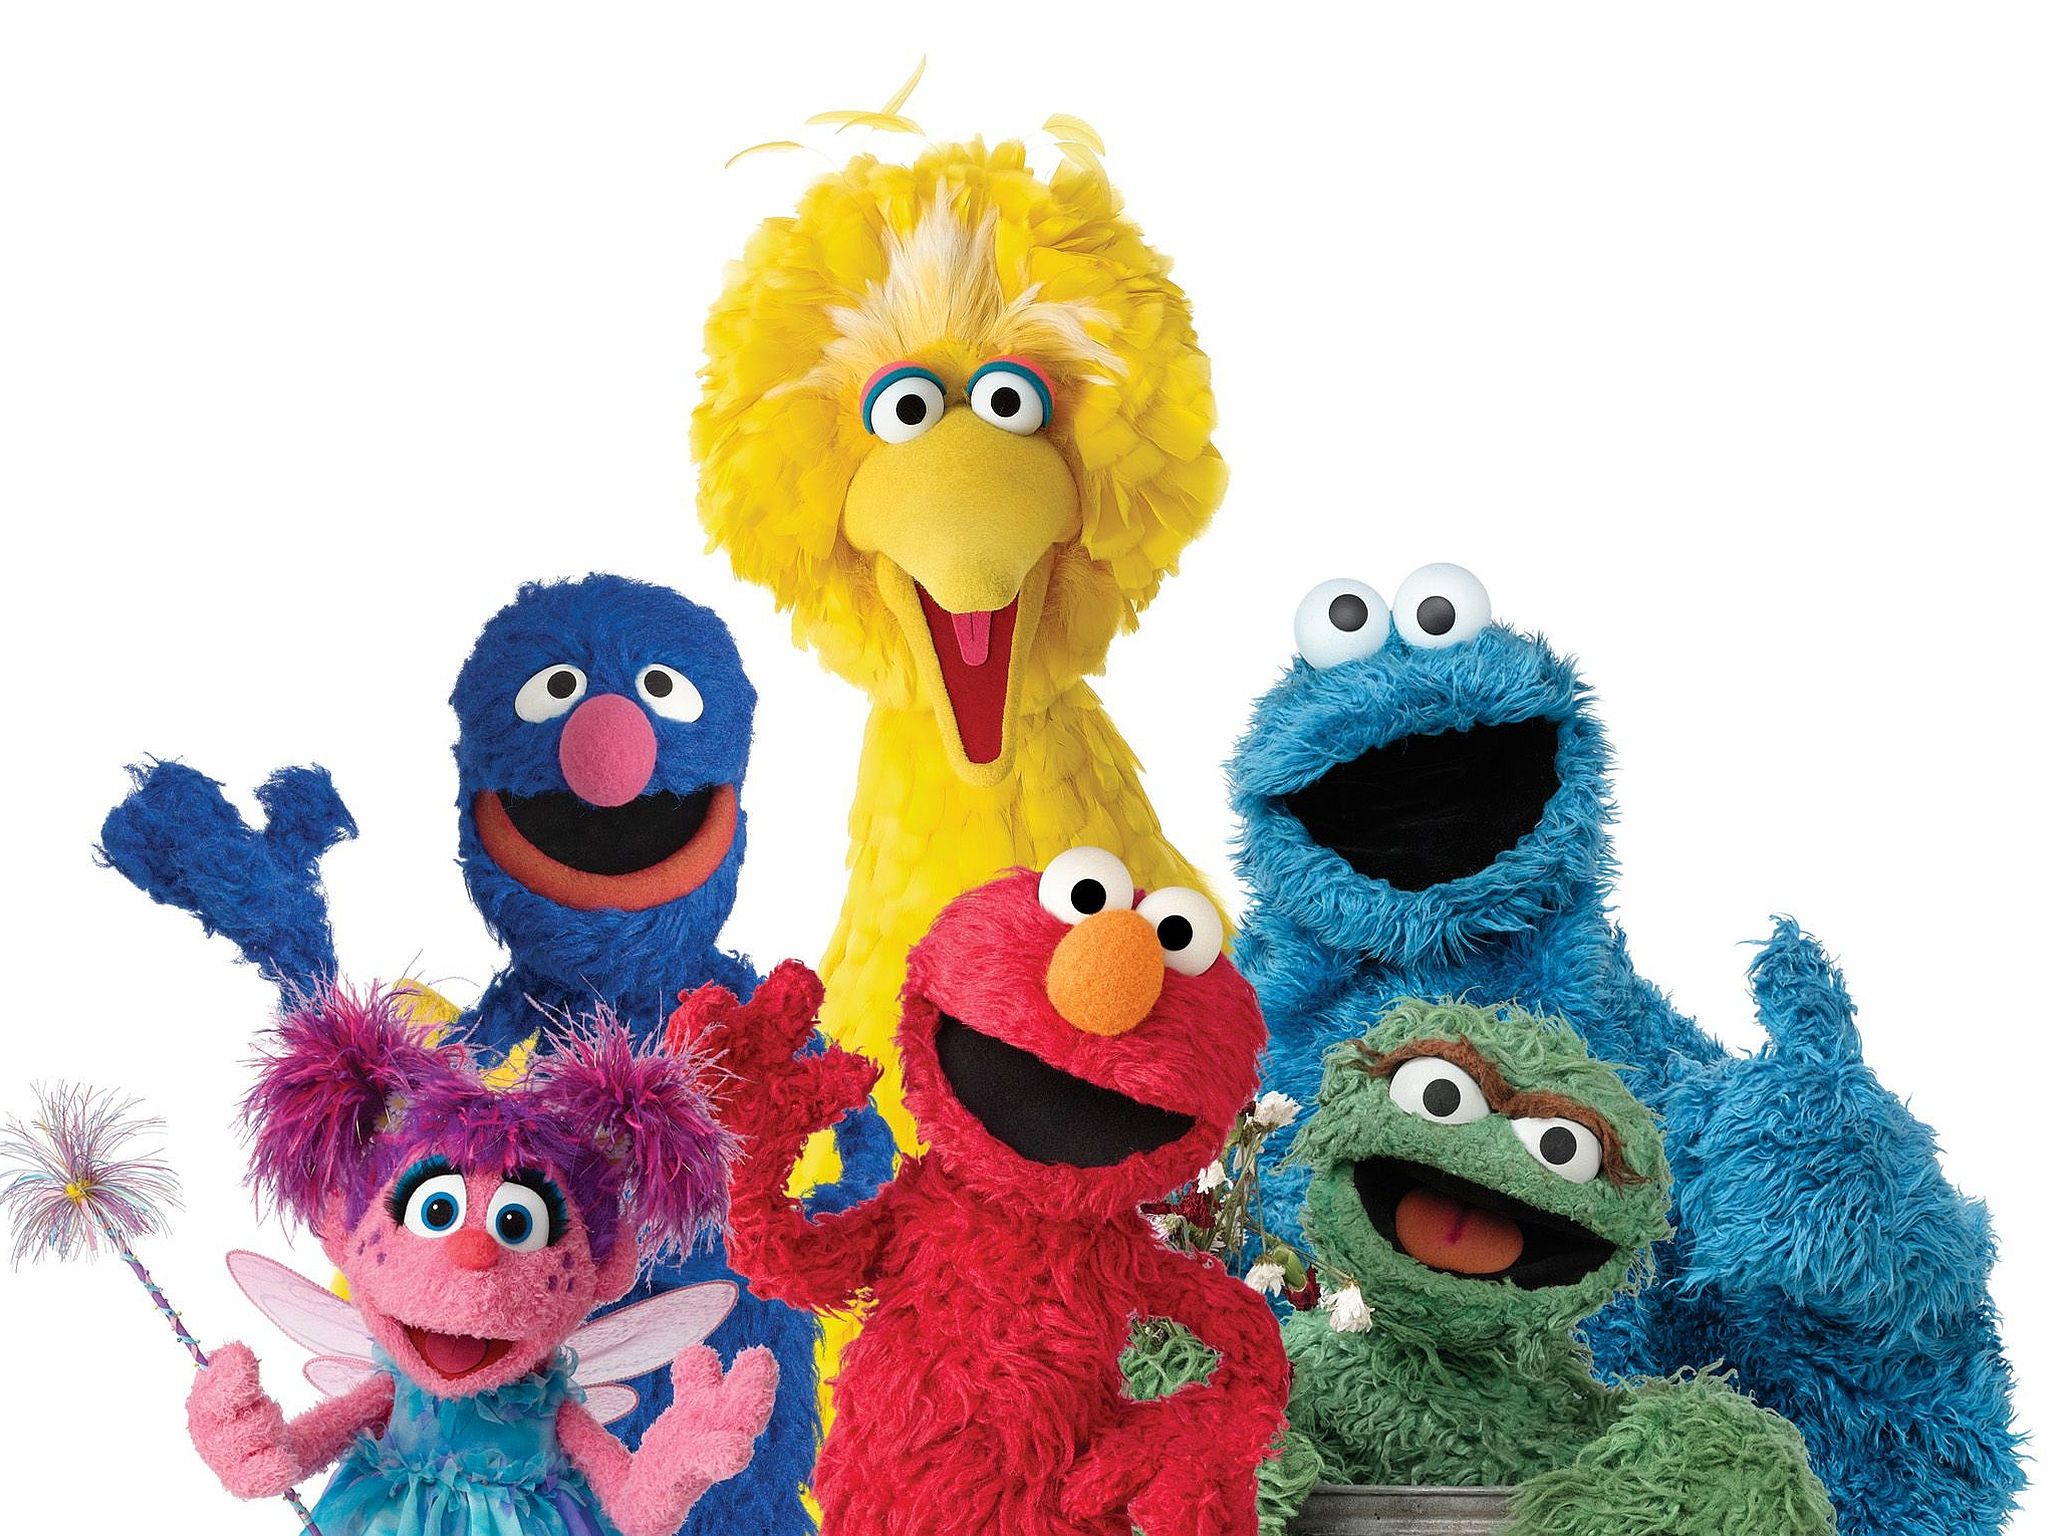 doubletoasted pluspng.com - Sesame Street Characters PNG